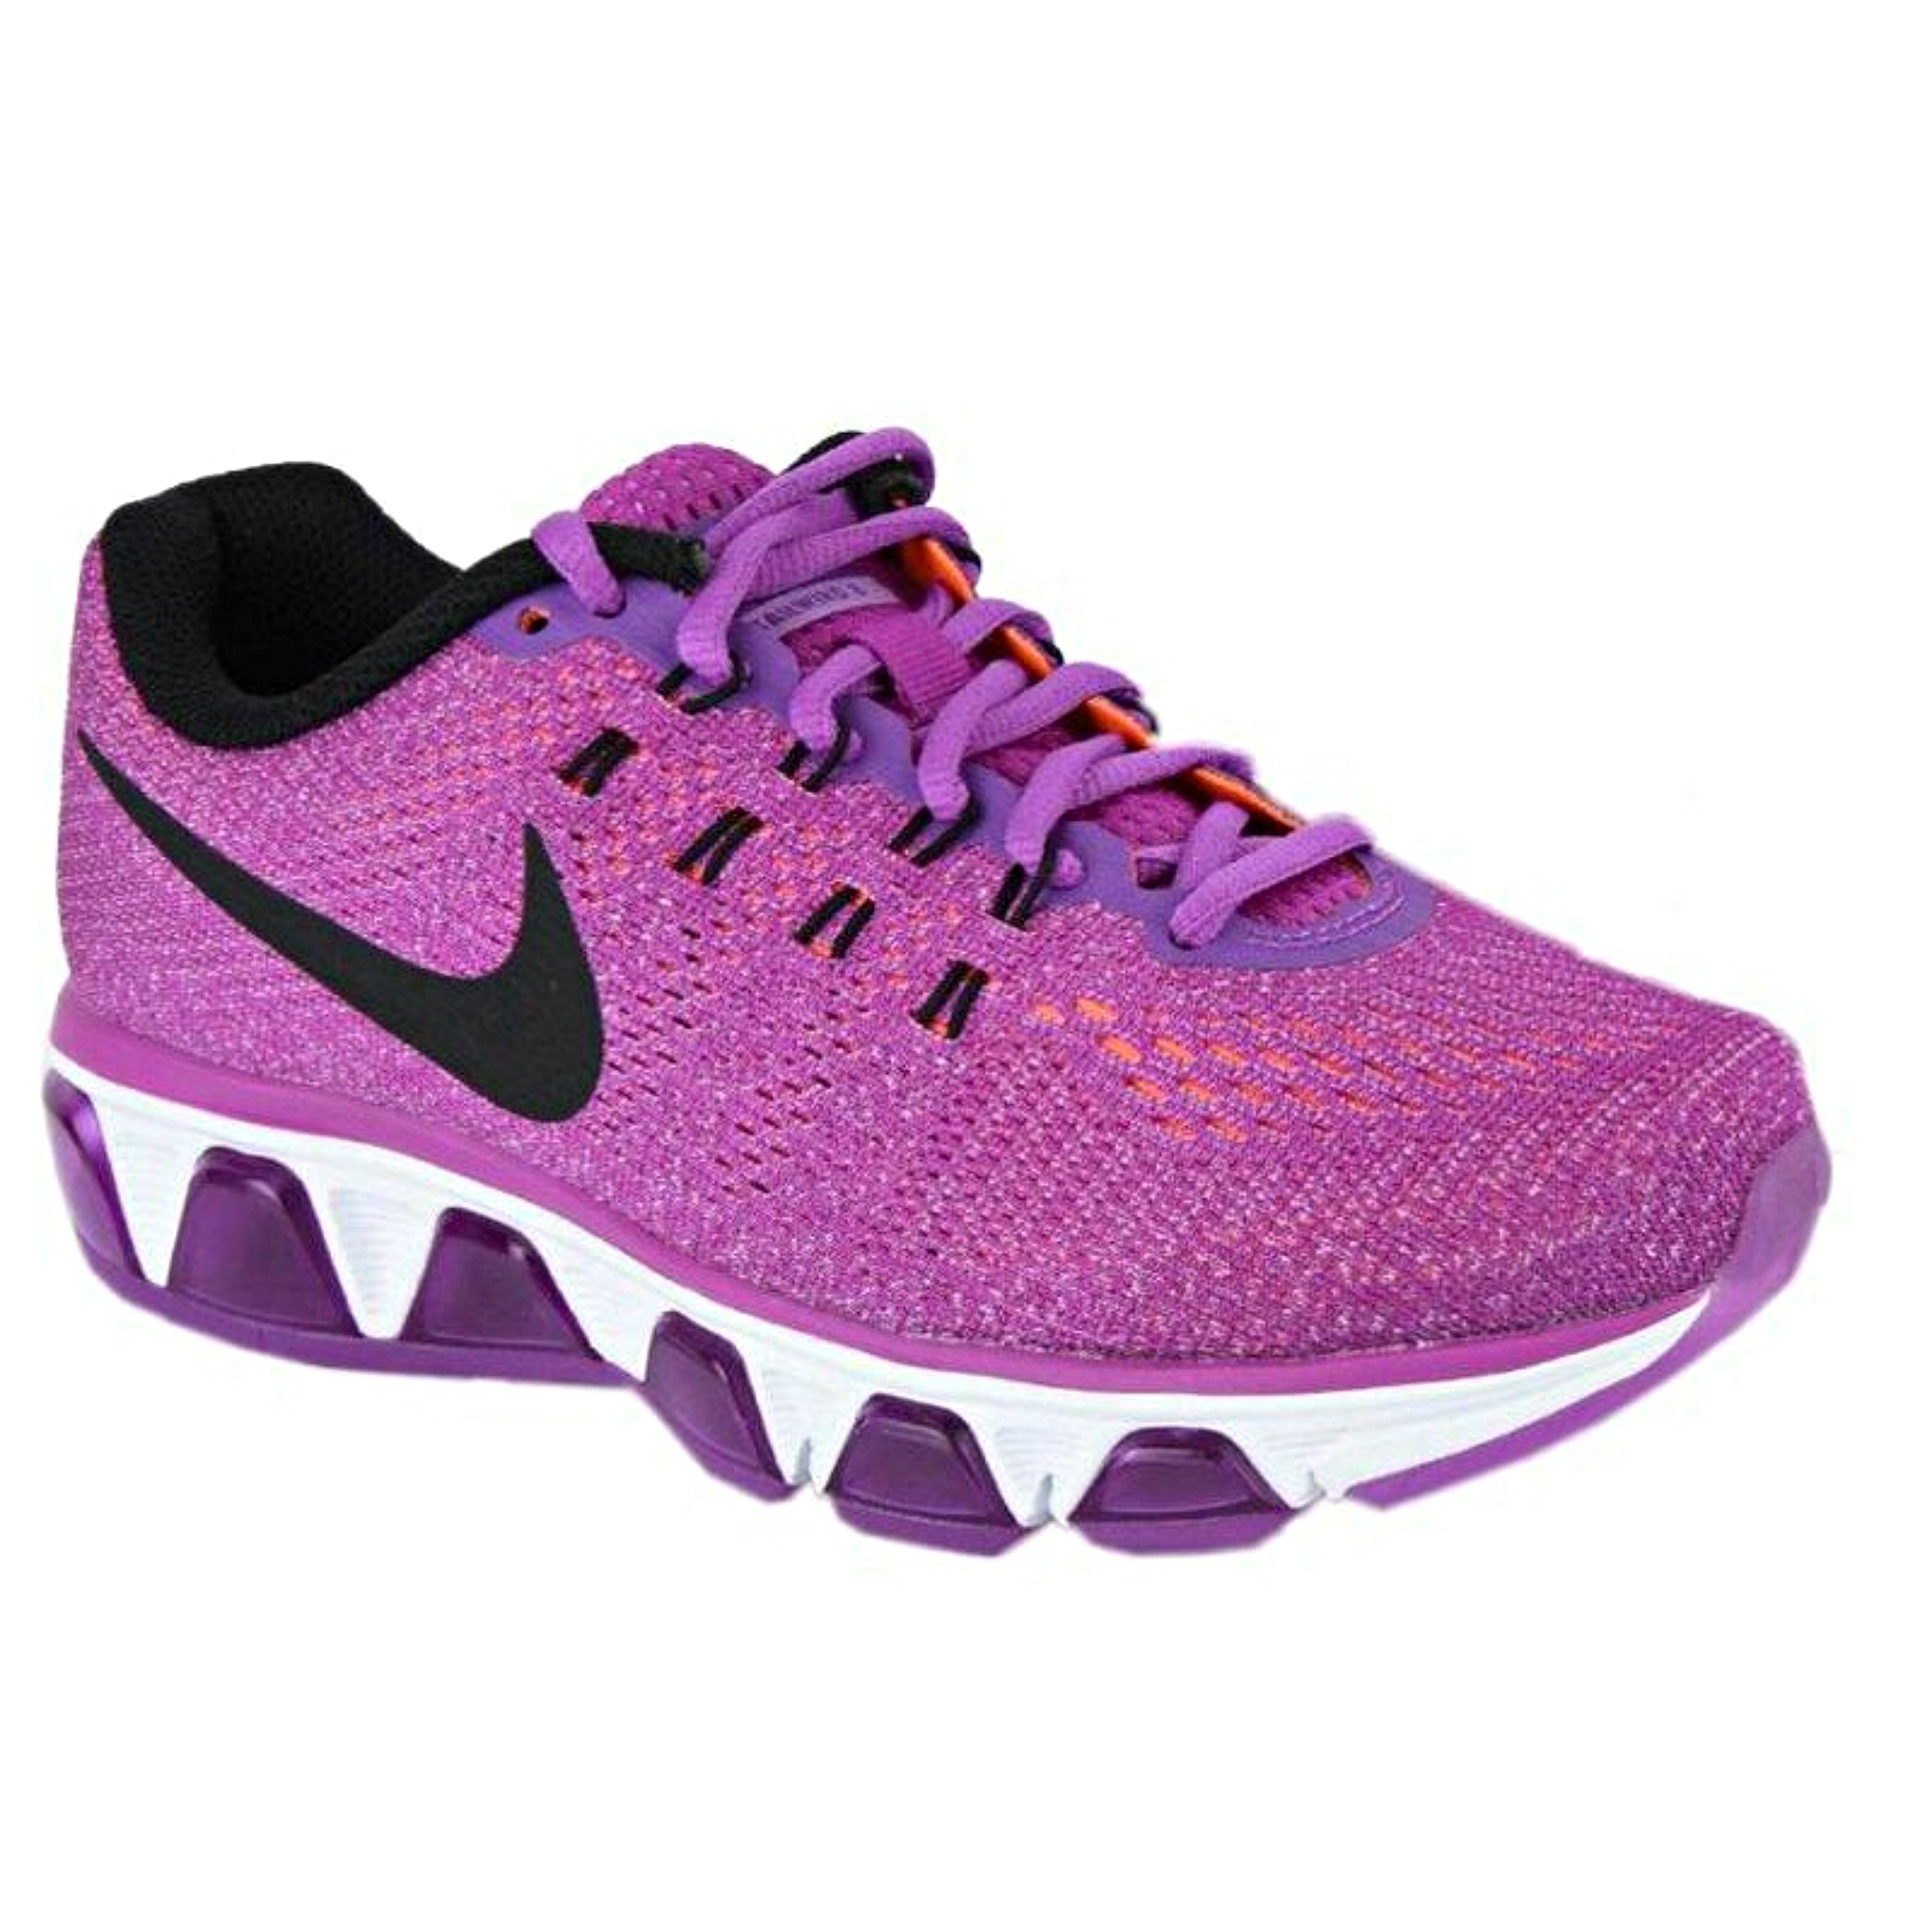 reputable site 31562 ade67 Galleon - Nike Womens Air Max Tailwind 8 Running Shoes (8)